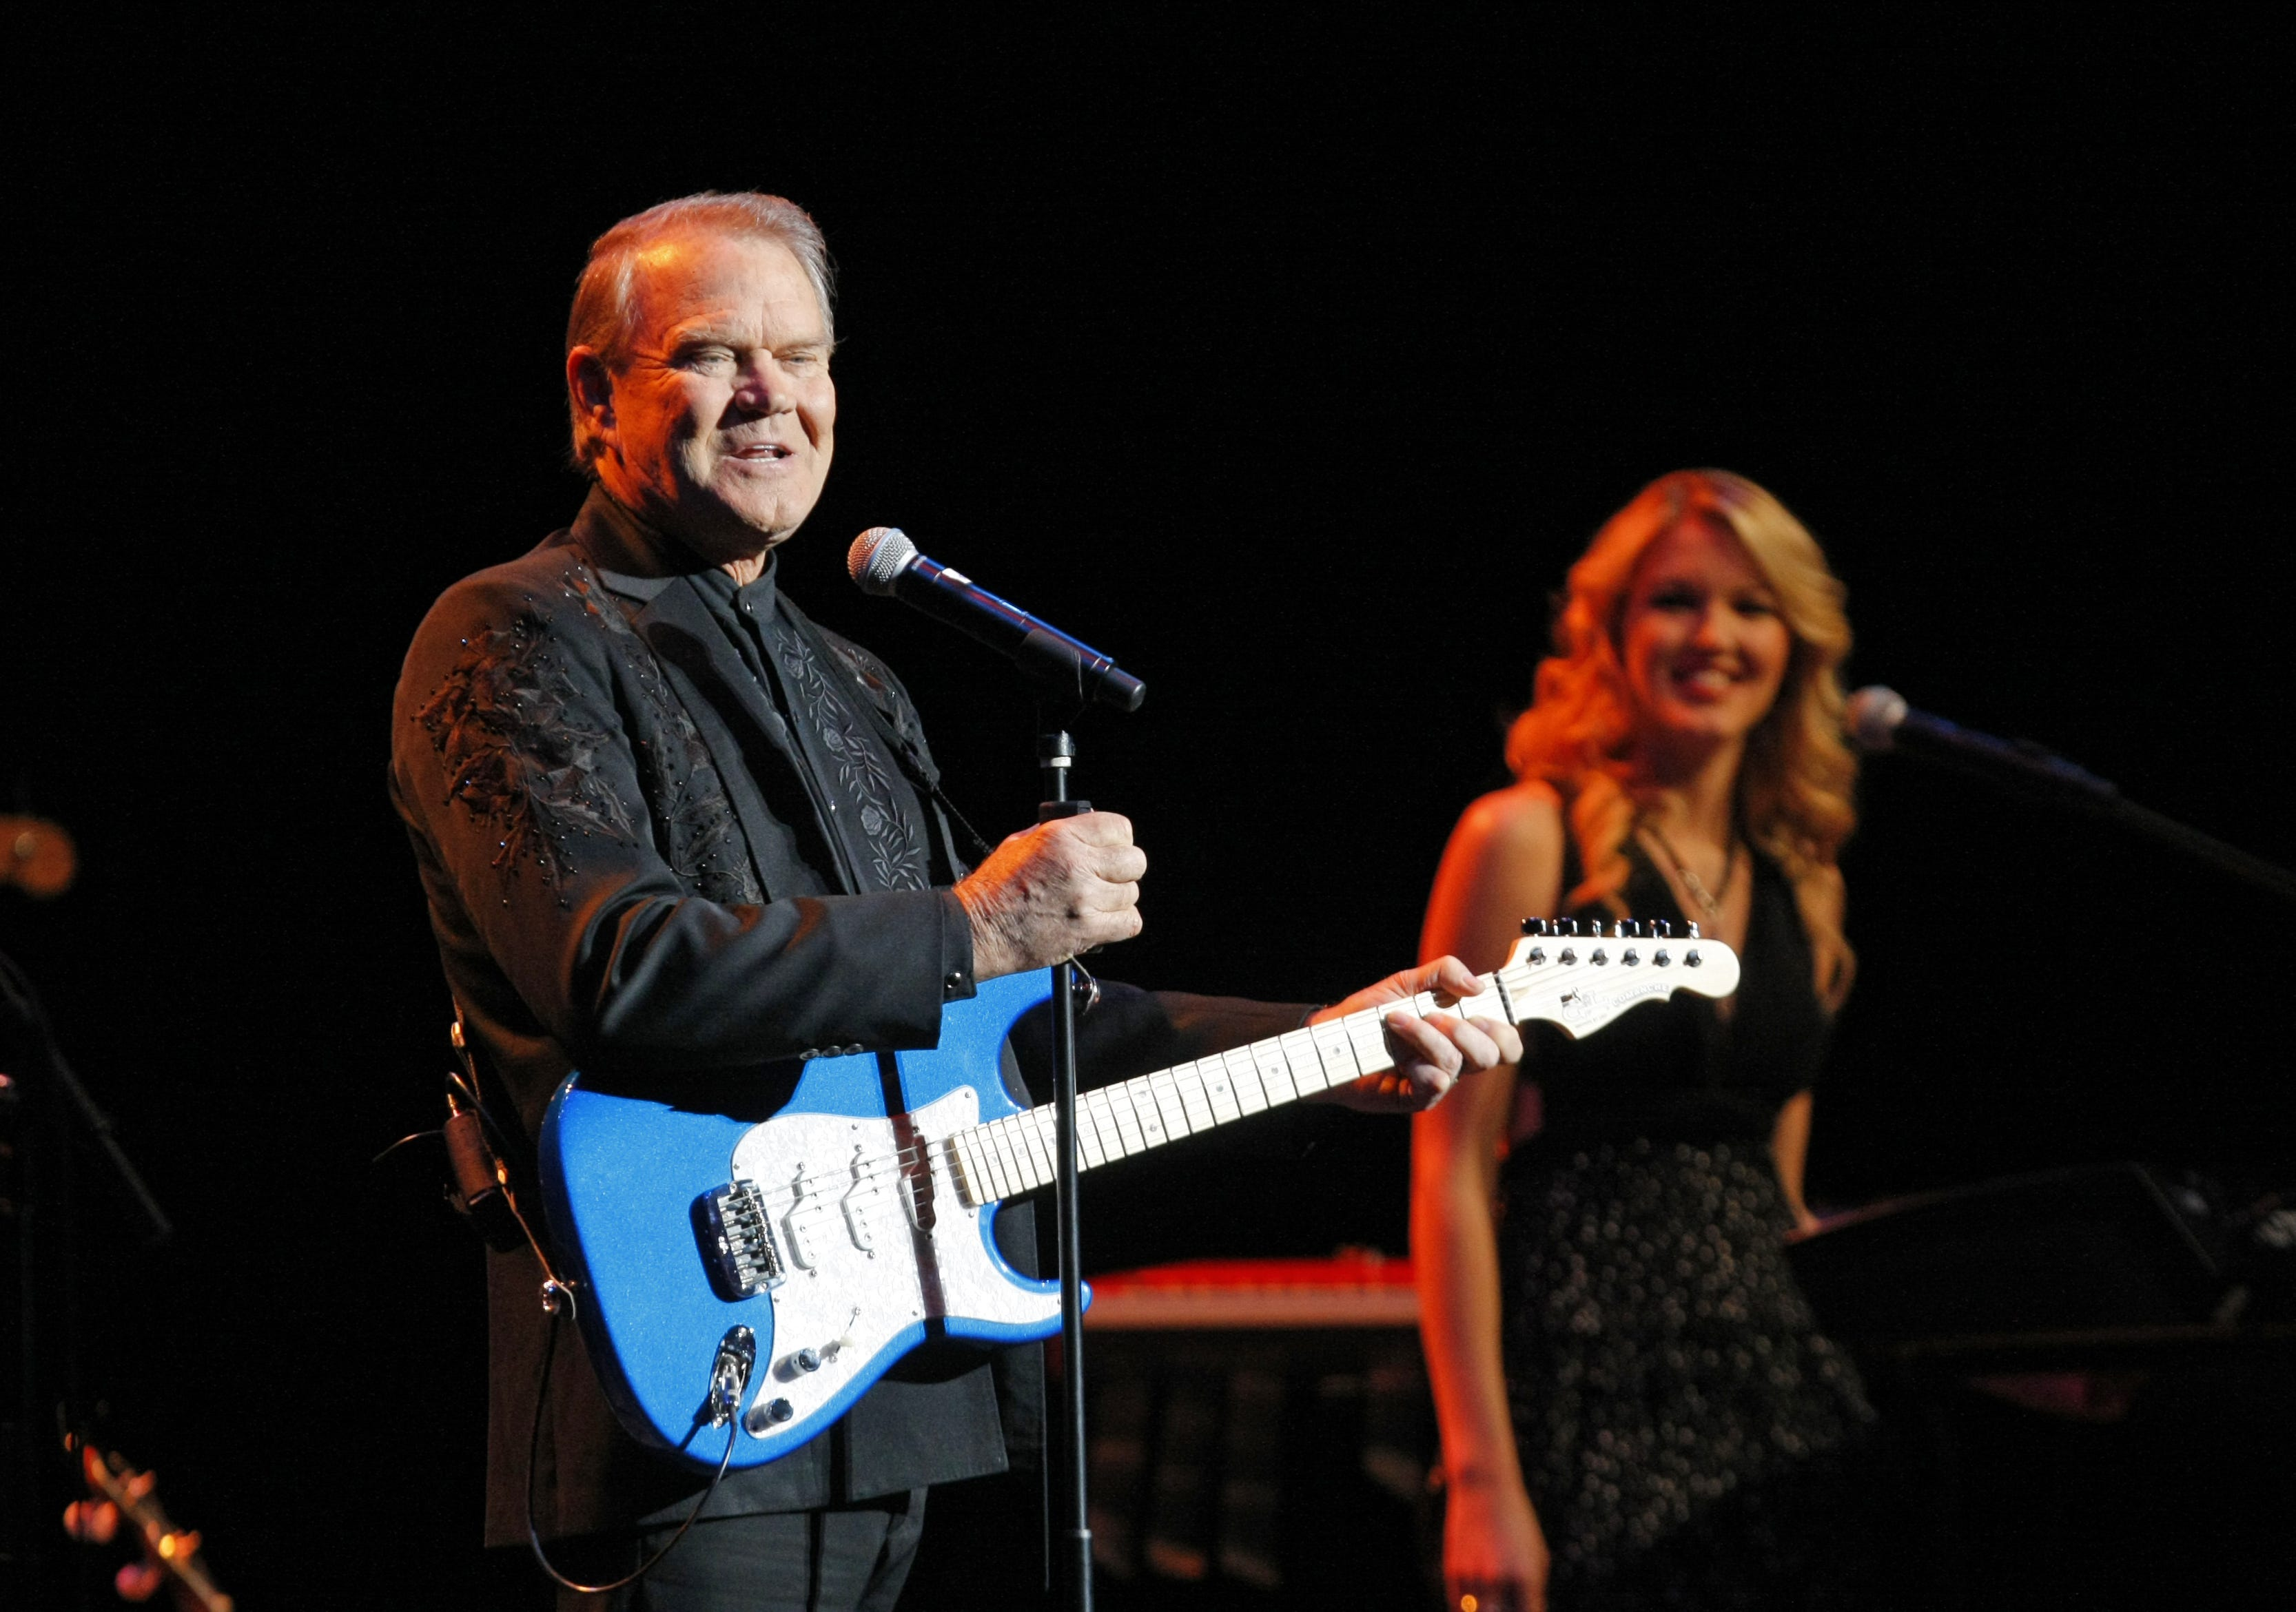 Jeff Dayton s  Salute to Glen Campbell  will relive  a crazy good time  at Phoenix show